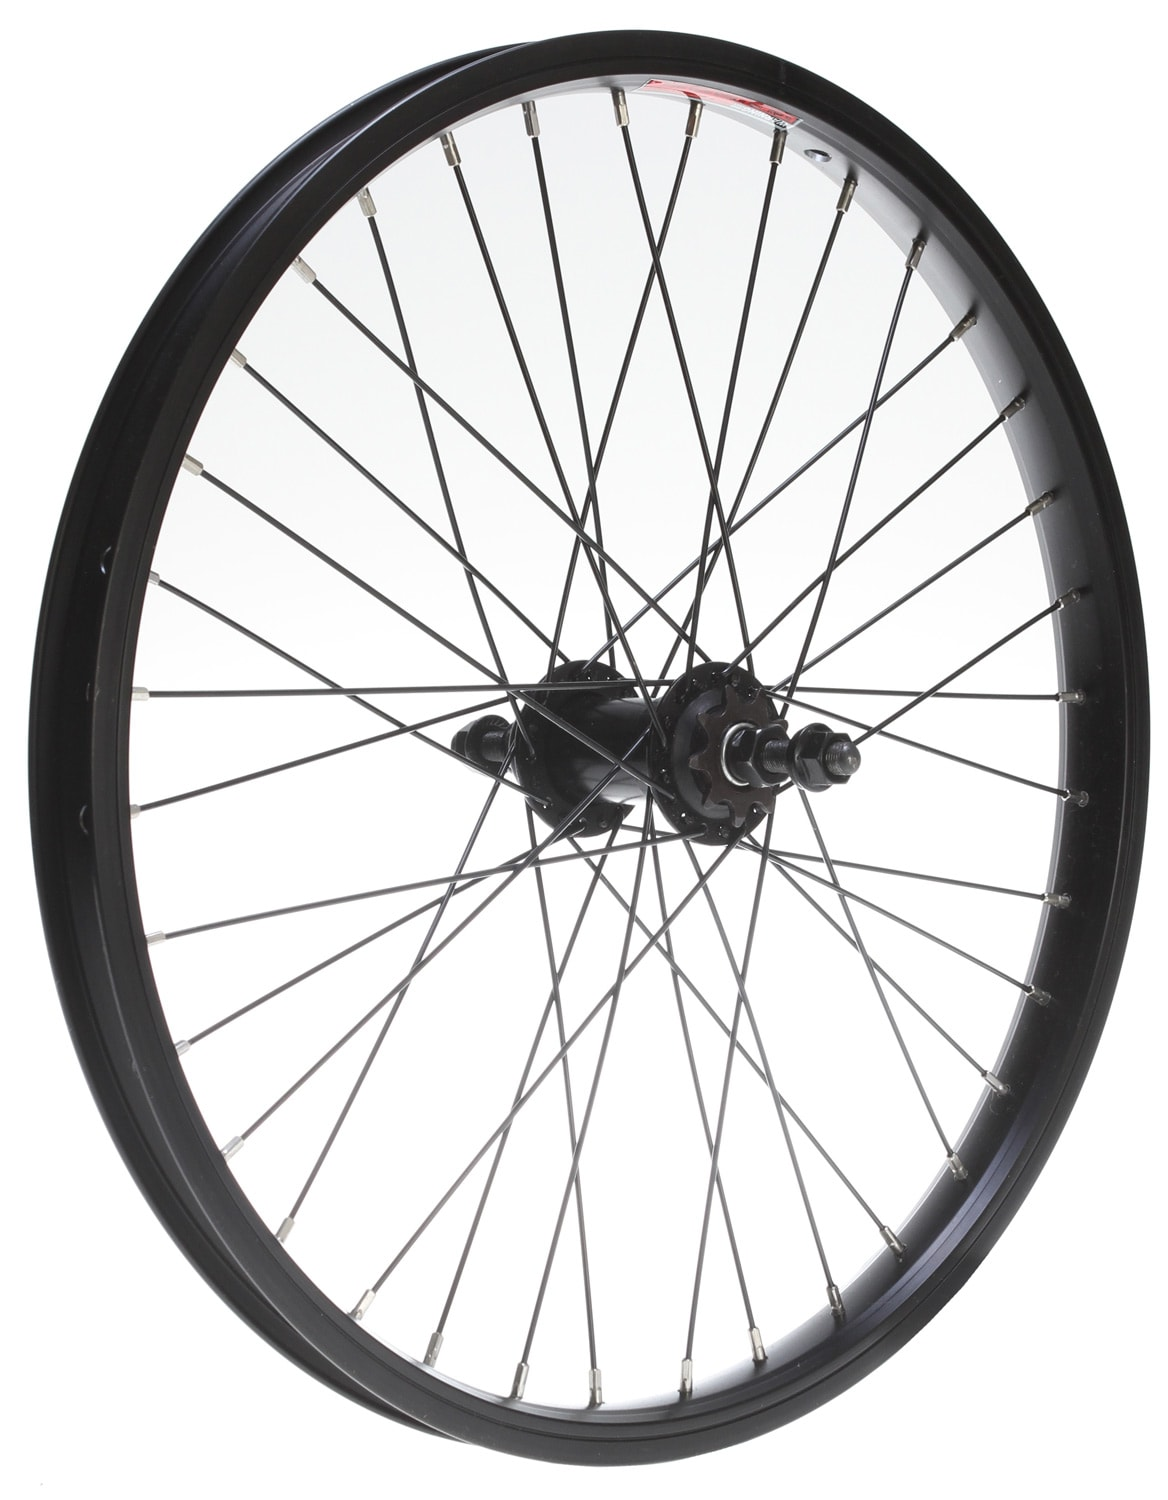 The Wheel Of Fortune As Advice: Sapient Rear Wheel With Bike Axle 3/8in